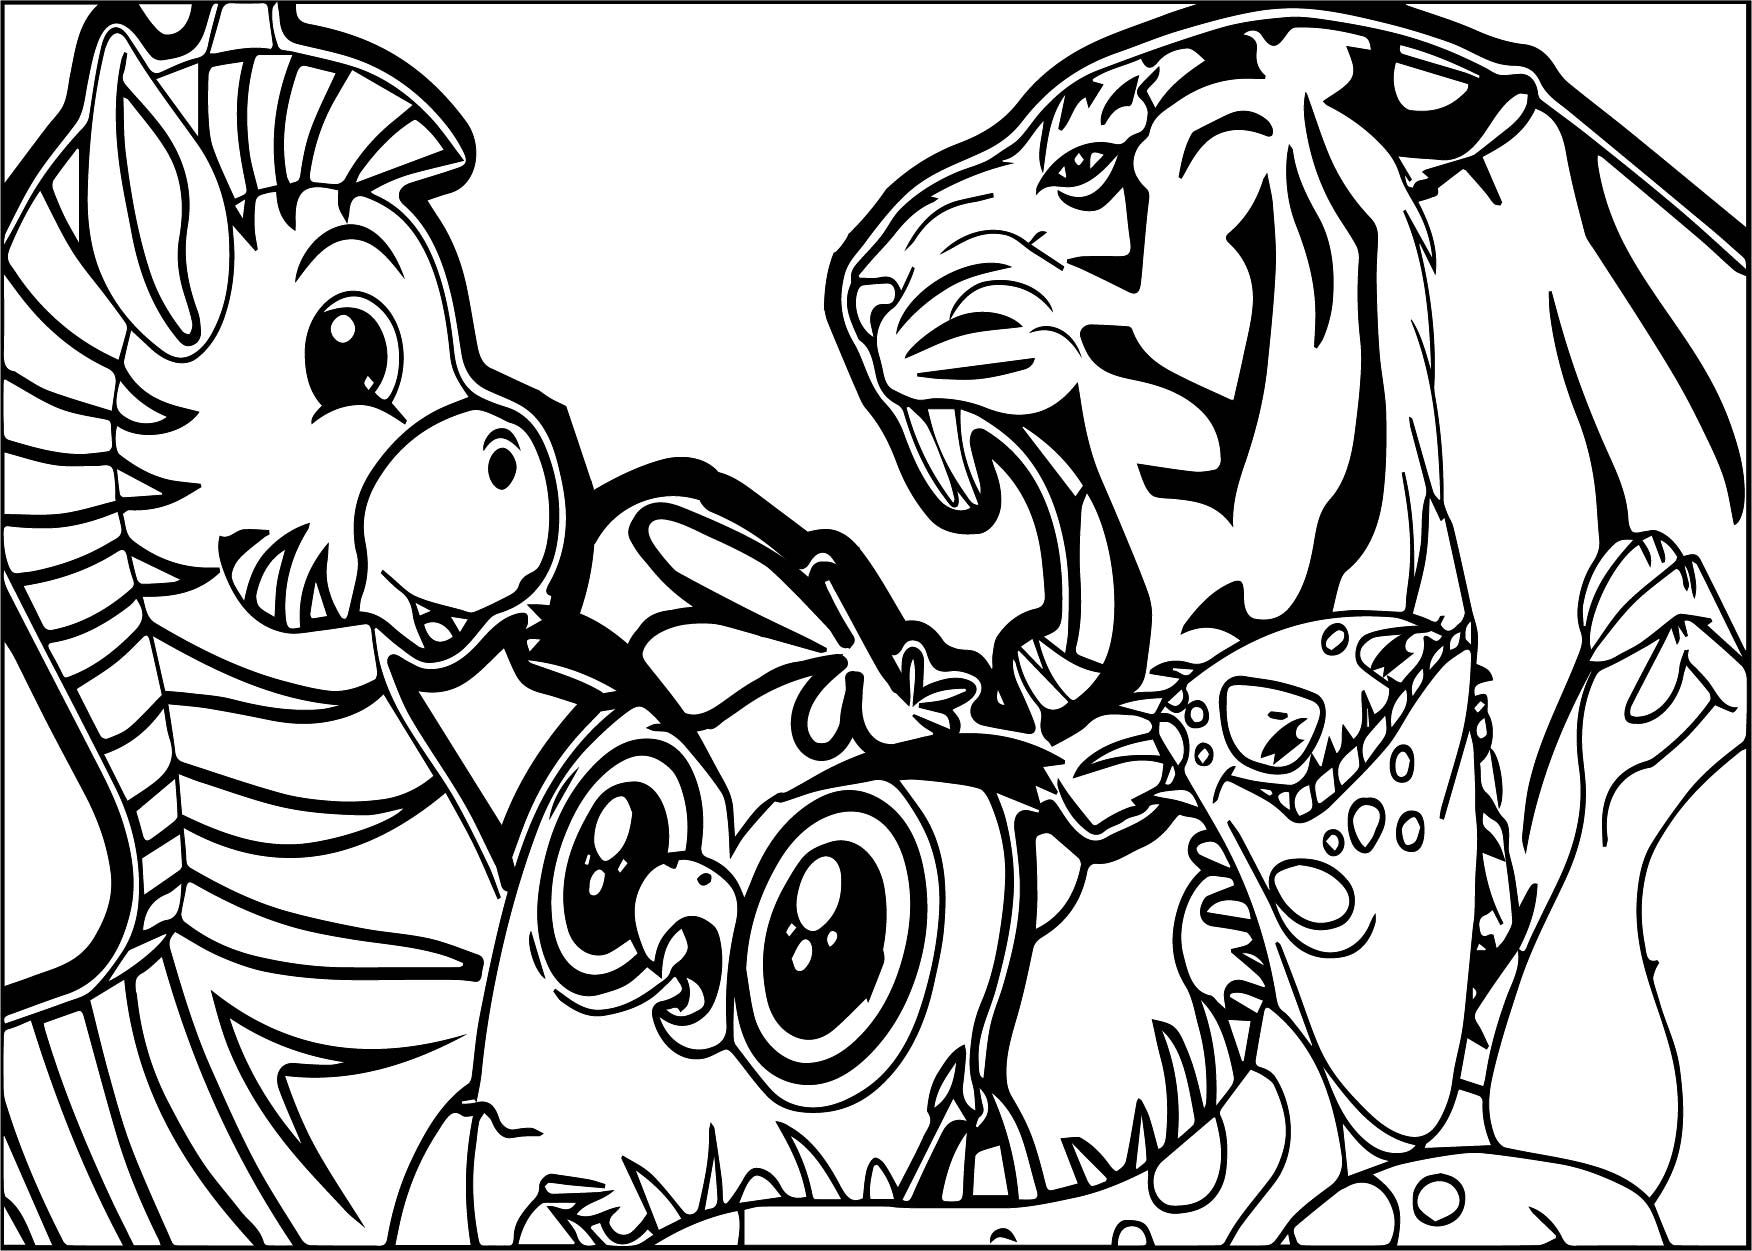 Cool abc animal zebra lion coloring page wecoloringpage in